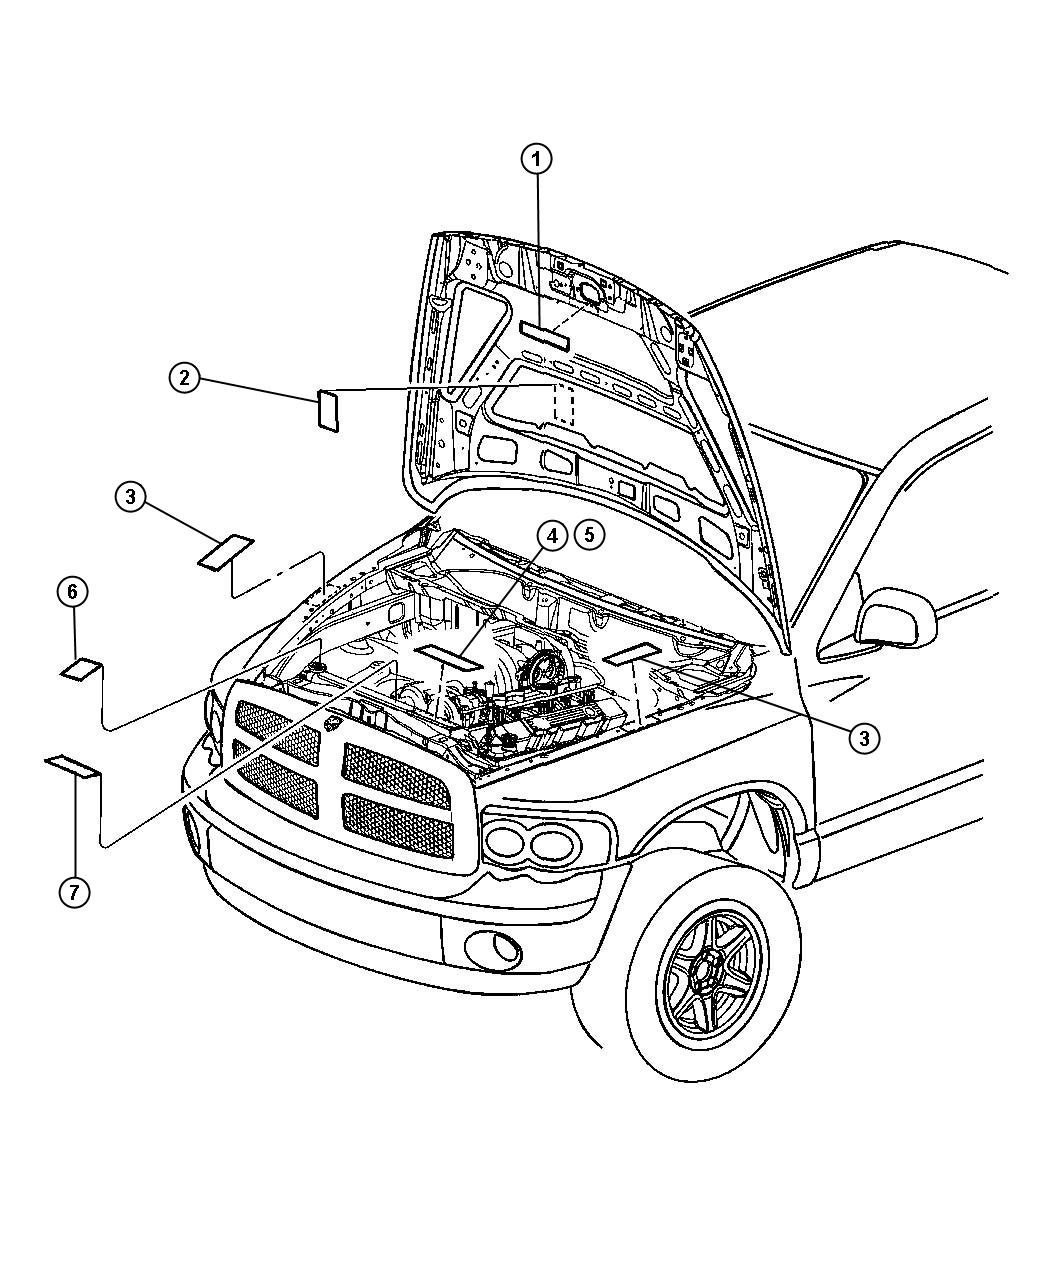 Dodge Ram 1500 Label  Air Conditioning System   Engines - All 5 9l Turbo Diesels